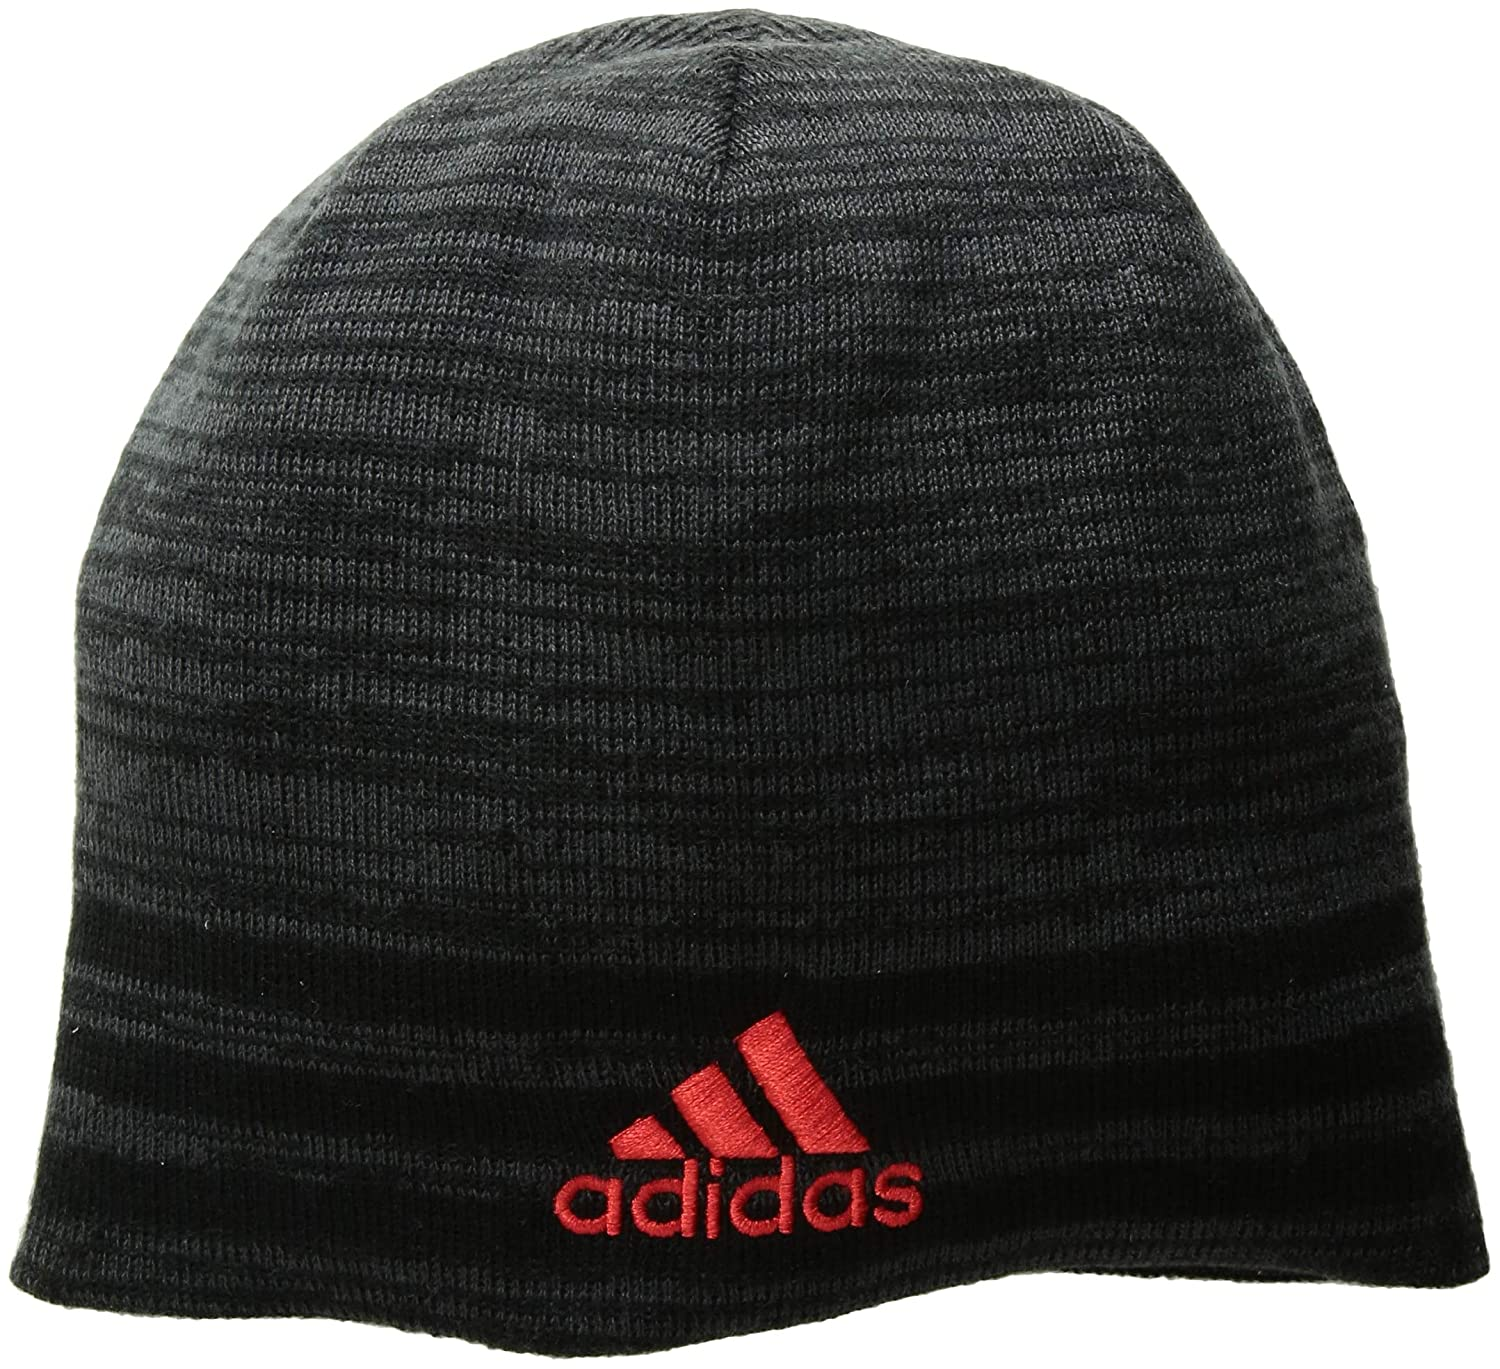 edca36866a3b8 Amazon.com  adidas Men s Eclipse Reversible Beanie